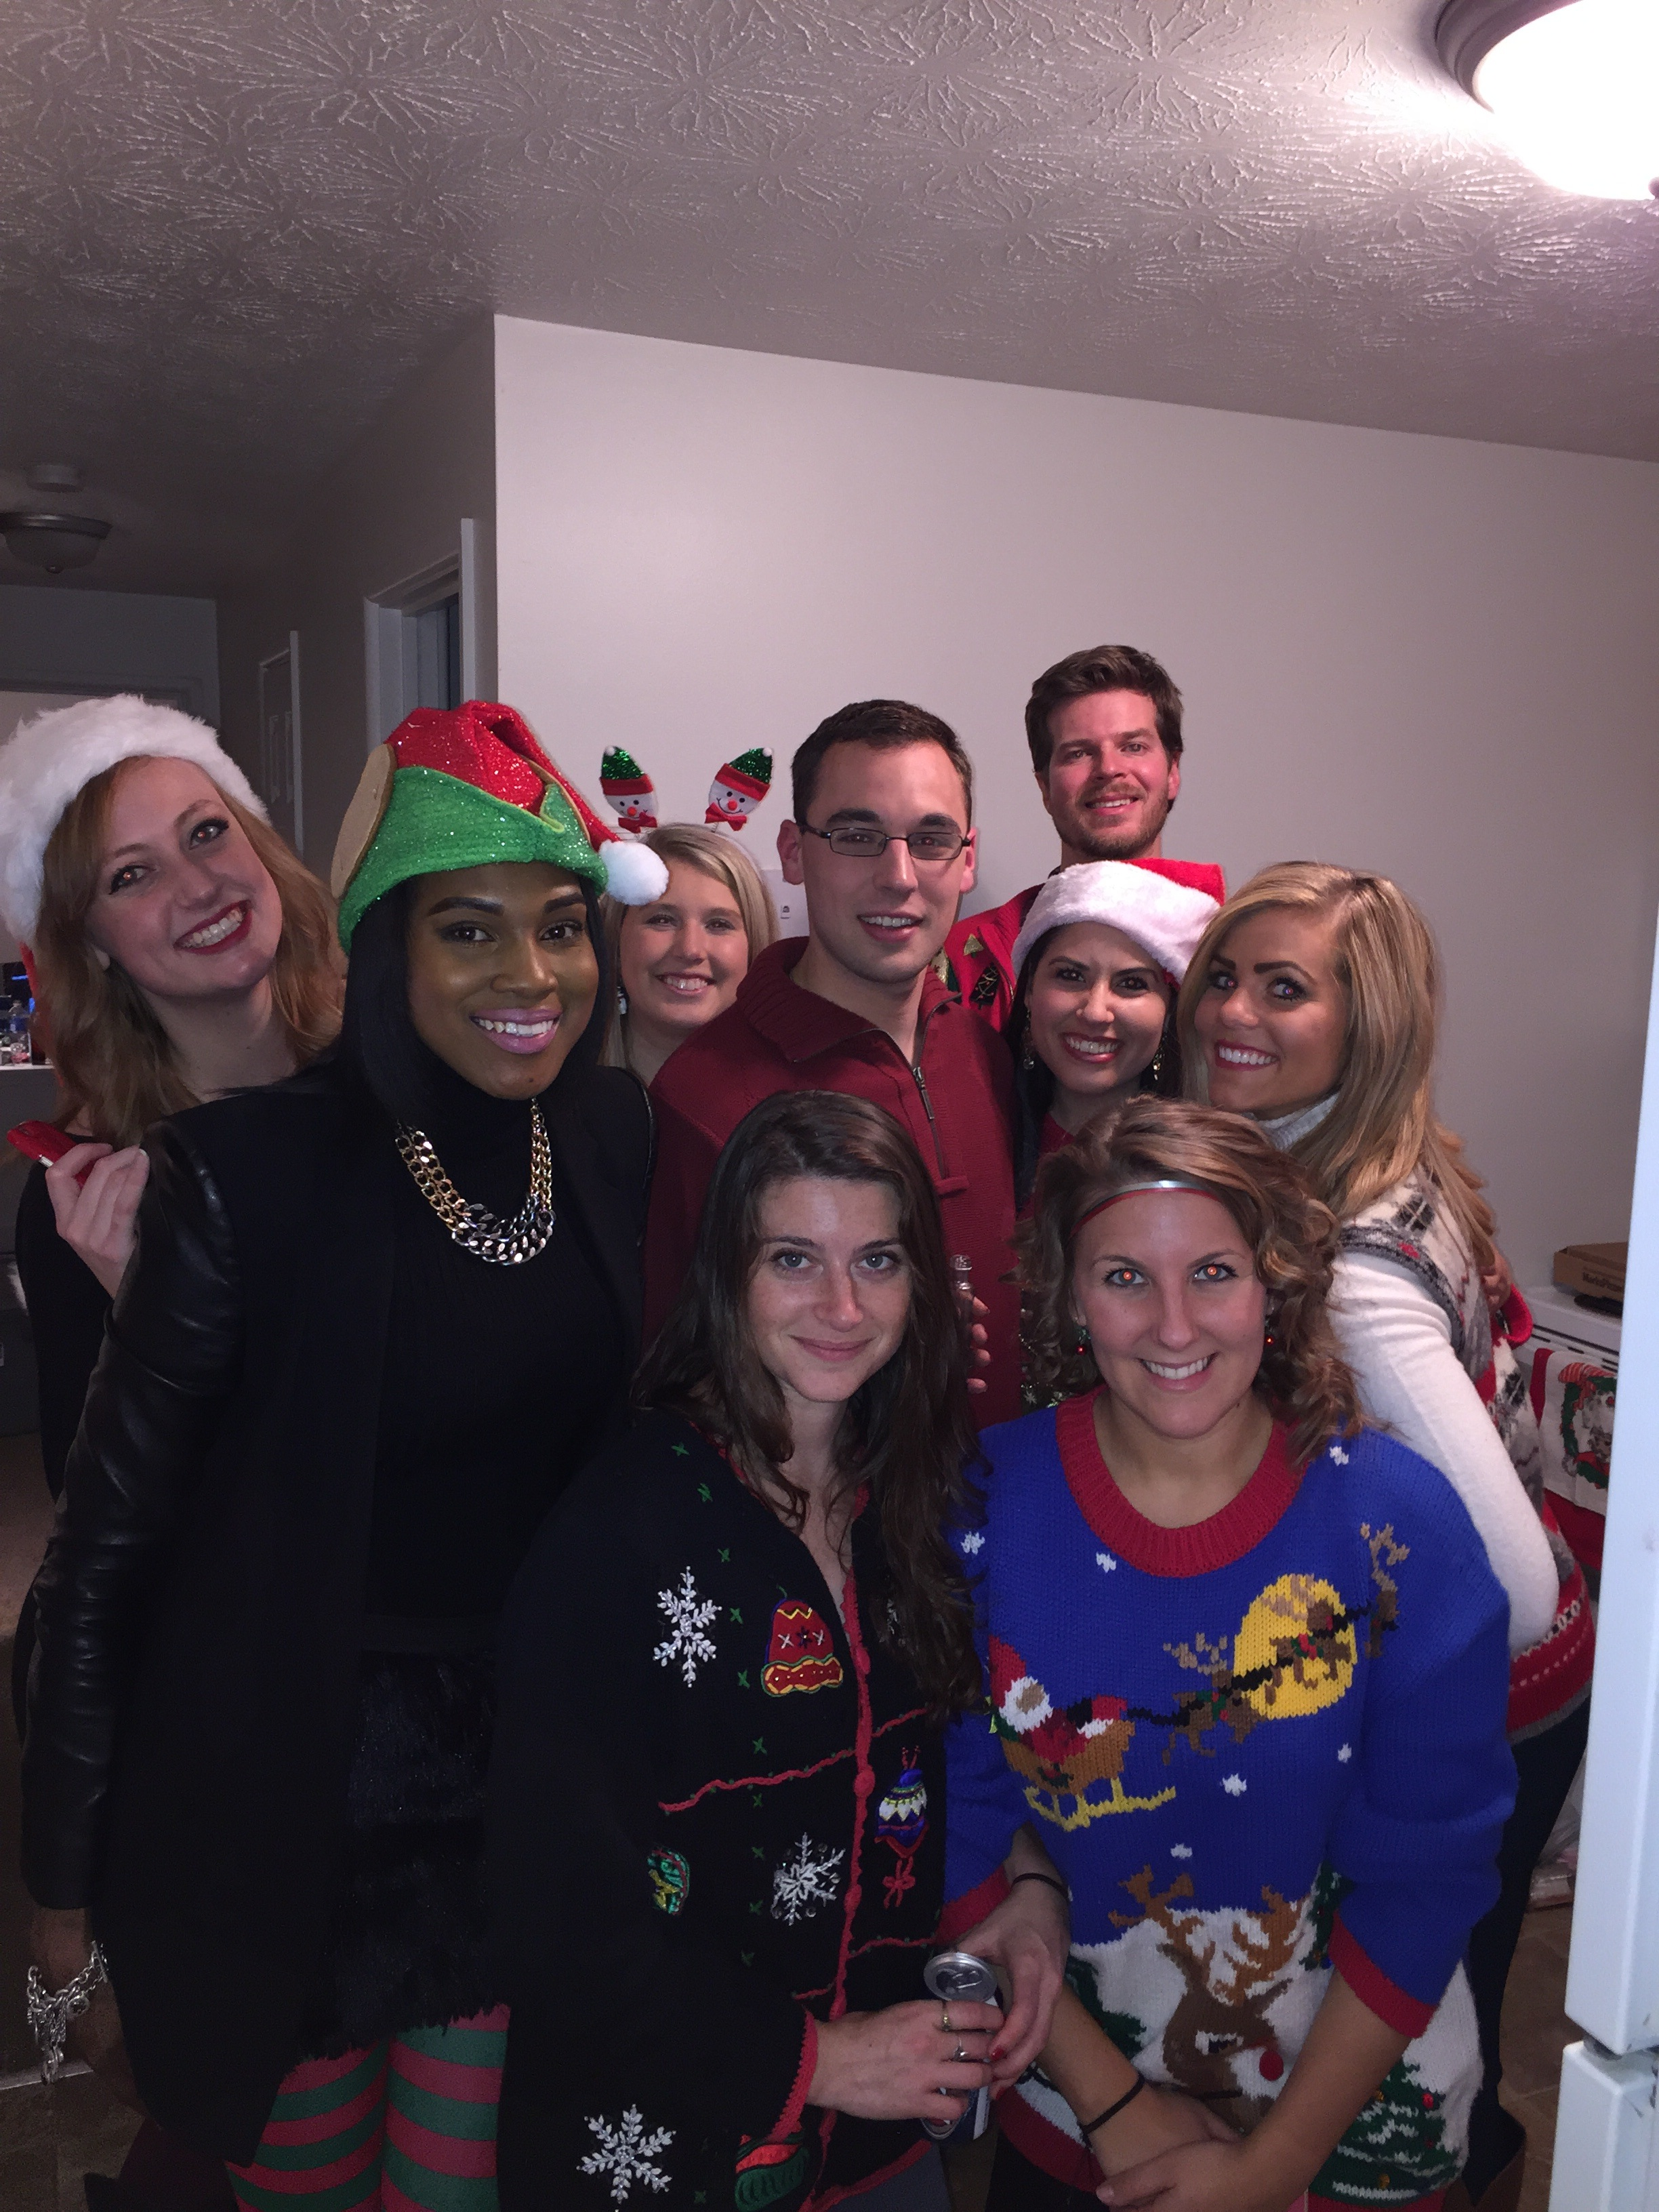 Oohlalablog-Christmas-Party-What I-wore-to-my-Ugly-Sweater-Party-61